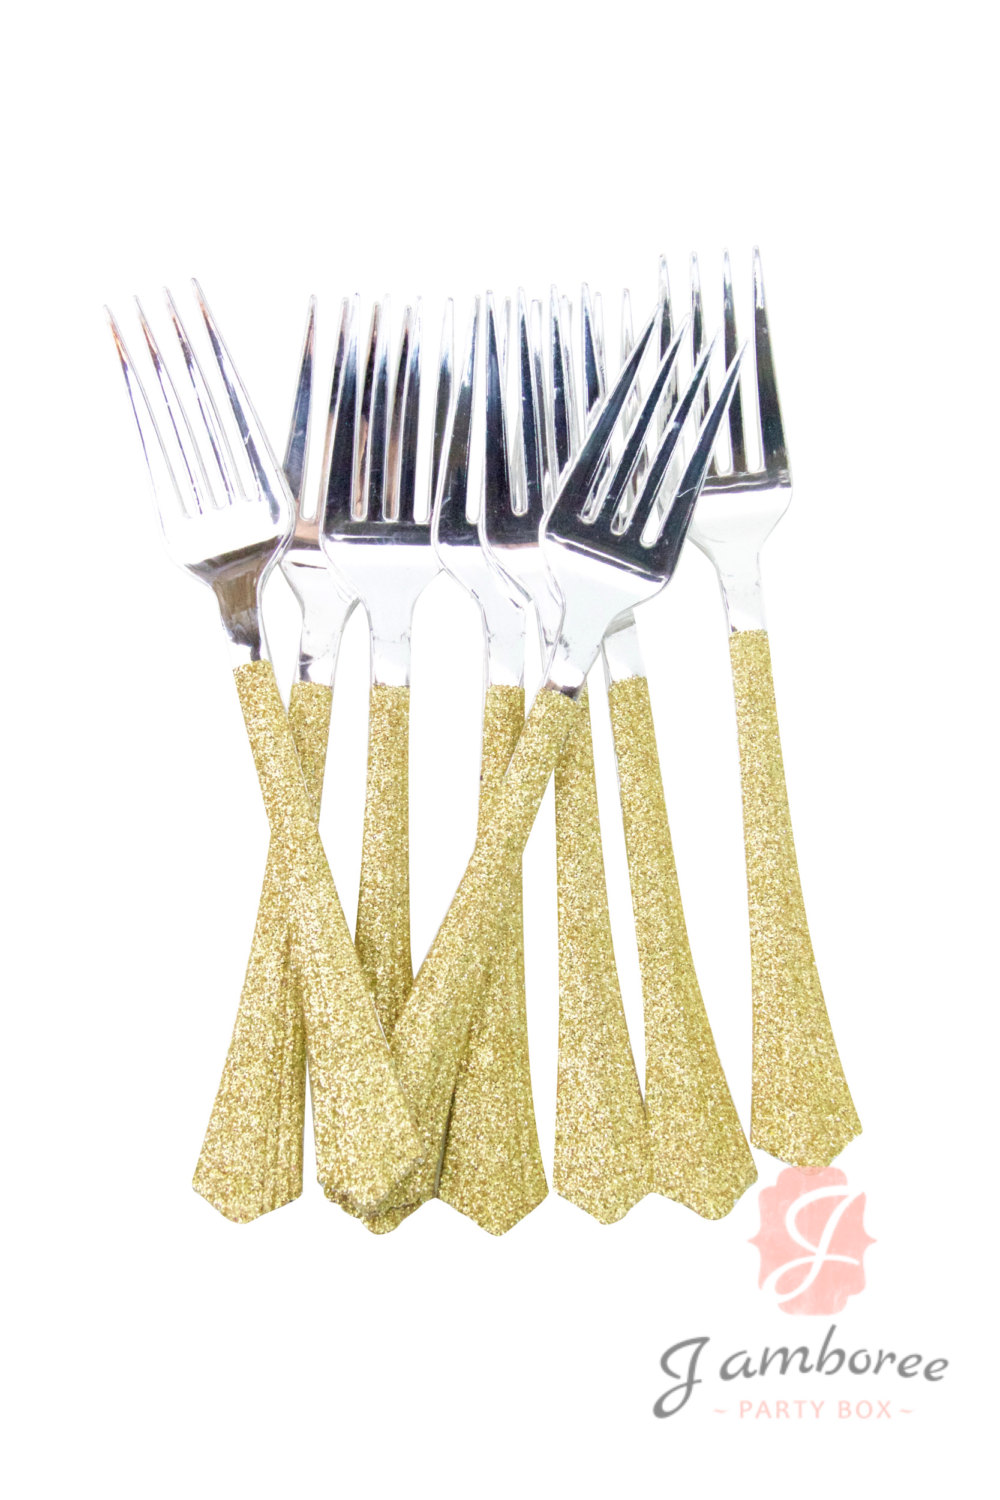 Luxury Gold Plastic Silverware for Serveware Ideas: Enjoyable Gold Plastic Silverware With Glitters Gold Plastic Silverware For Serverware Ideas